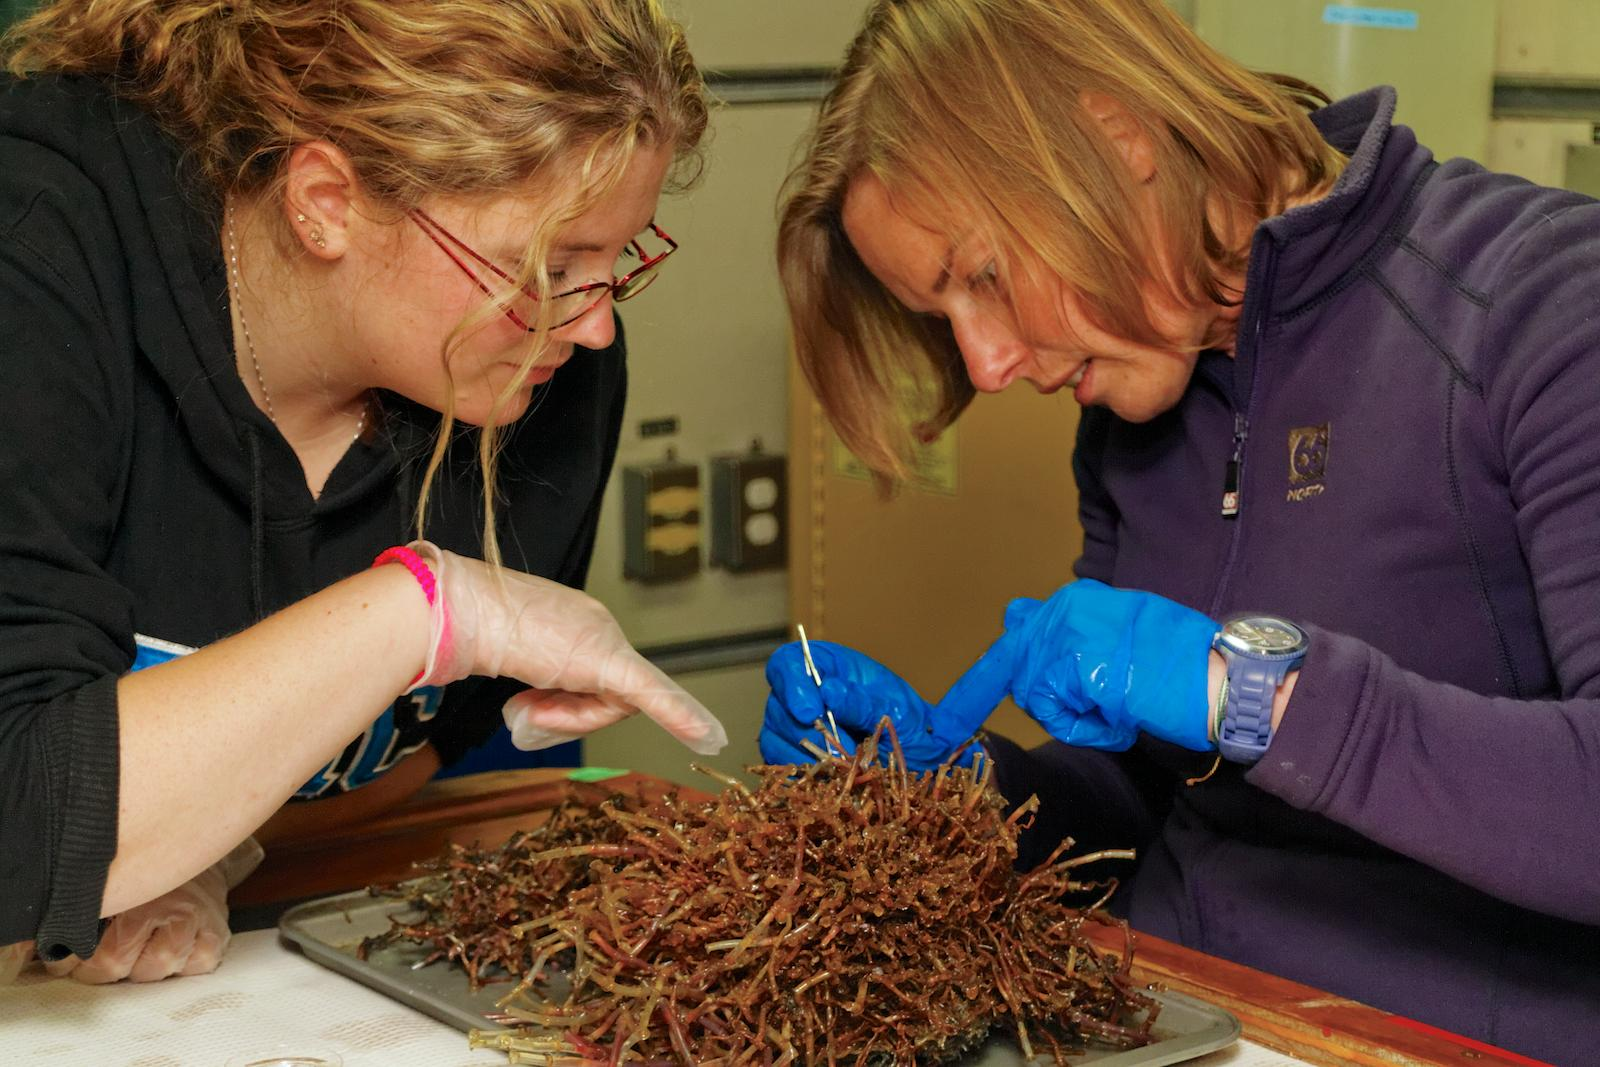 Clio Bonnett (ONC) assists Daphne Cuvellier (Ifremer) with the processing of a tubeworm cluster from the Endeavour Hydrothermal Vent Field. June 22, 2013. Photo by Ed McNichol.